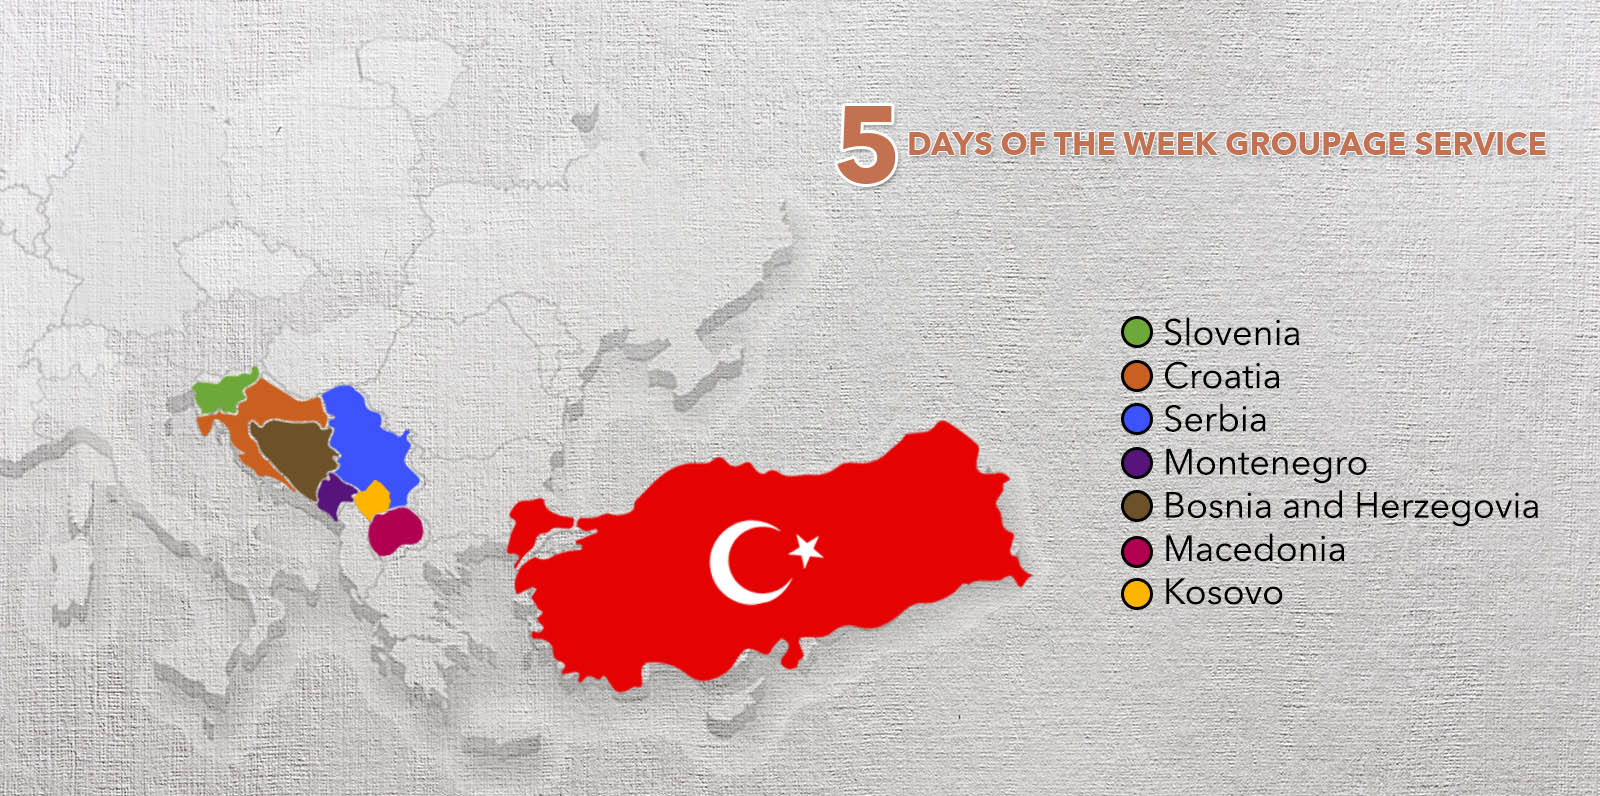 5 Days Of The Week Groupage Shipments, Partial Shipment, Partial Transport, Balkan, Little Truck Shipment, Turkey, Istanbul, Logistics, Transportation, Full Truck